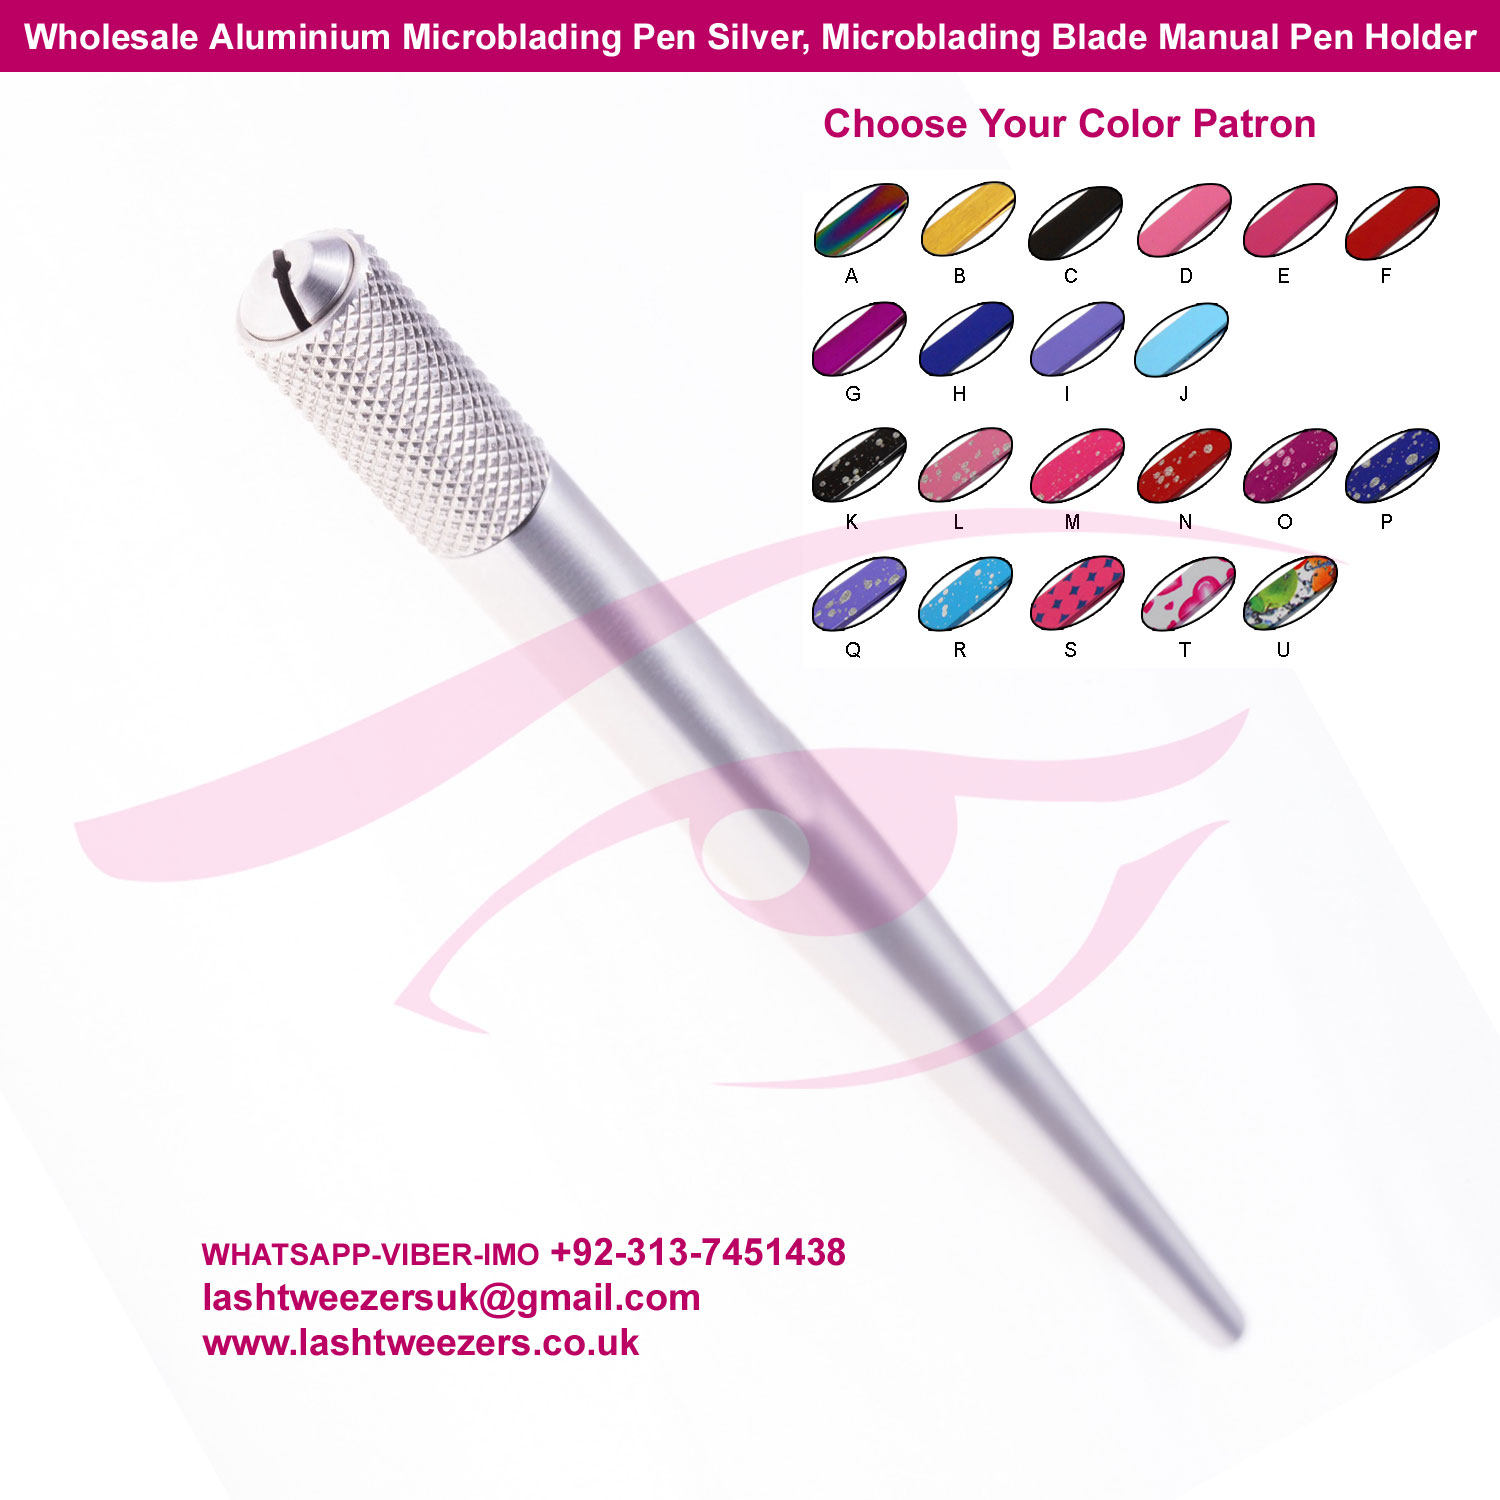 Wholesale-Aluminium-Microblading-Pen-Silver-Microblading-Blade-Manual-Pen-Holder